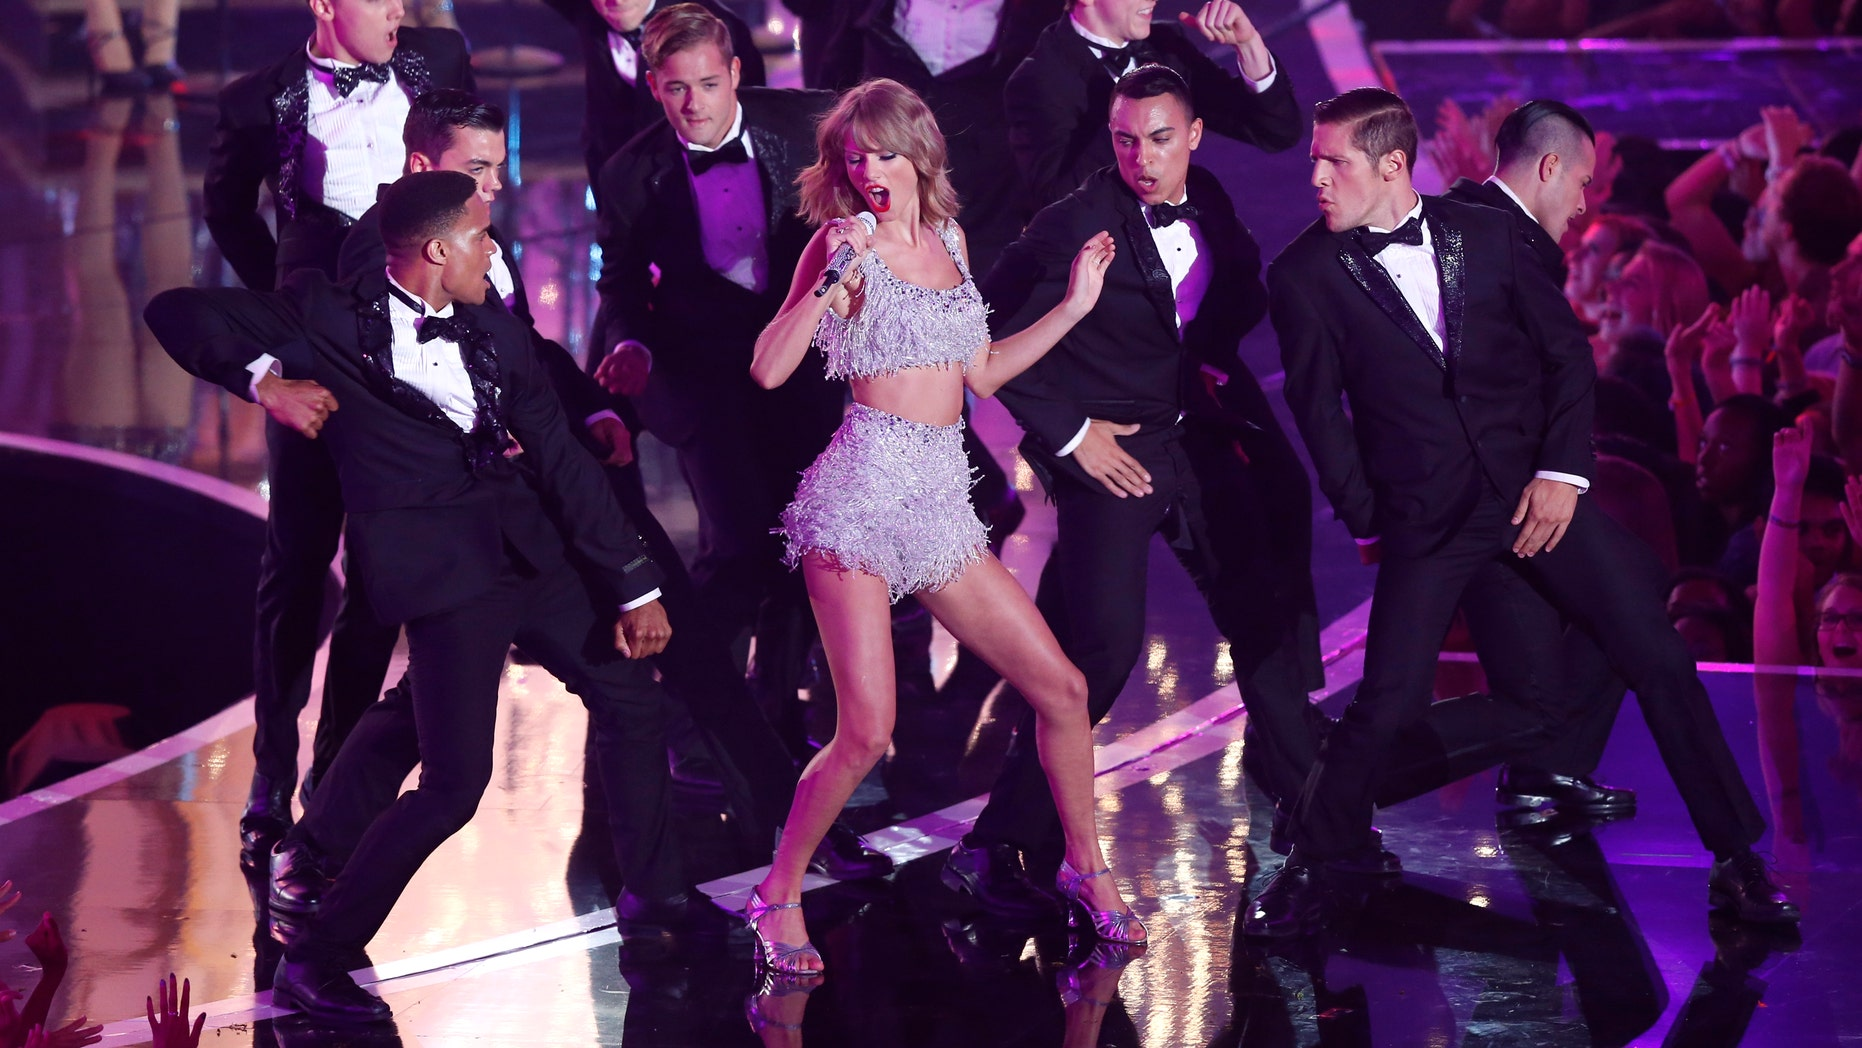 """Taylor Swift performs """"Shake It Off"""" during the 2014 MTV Video Music Awards in Inglewood, California August 24, 2014.   REUTERS/Mario Anzuoni (UNITED STATES  - Tags: ENTERTAINMENT TPX IMAGES OF THE DAY)   (MTV-SHOW) - RTR43KDN"""